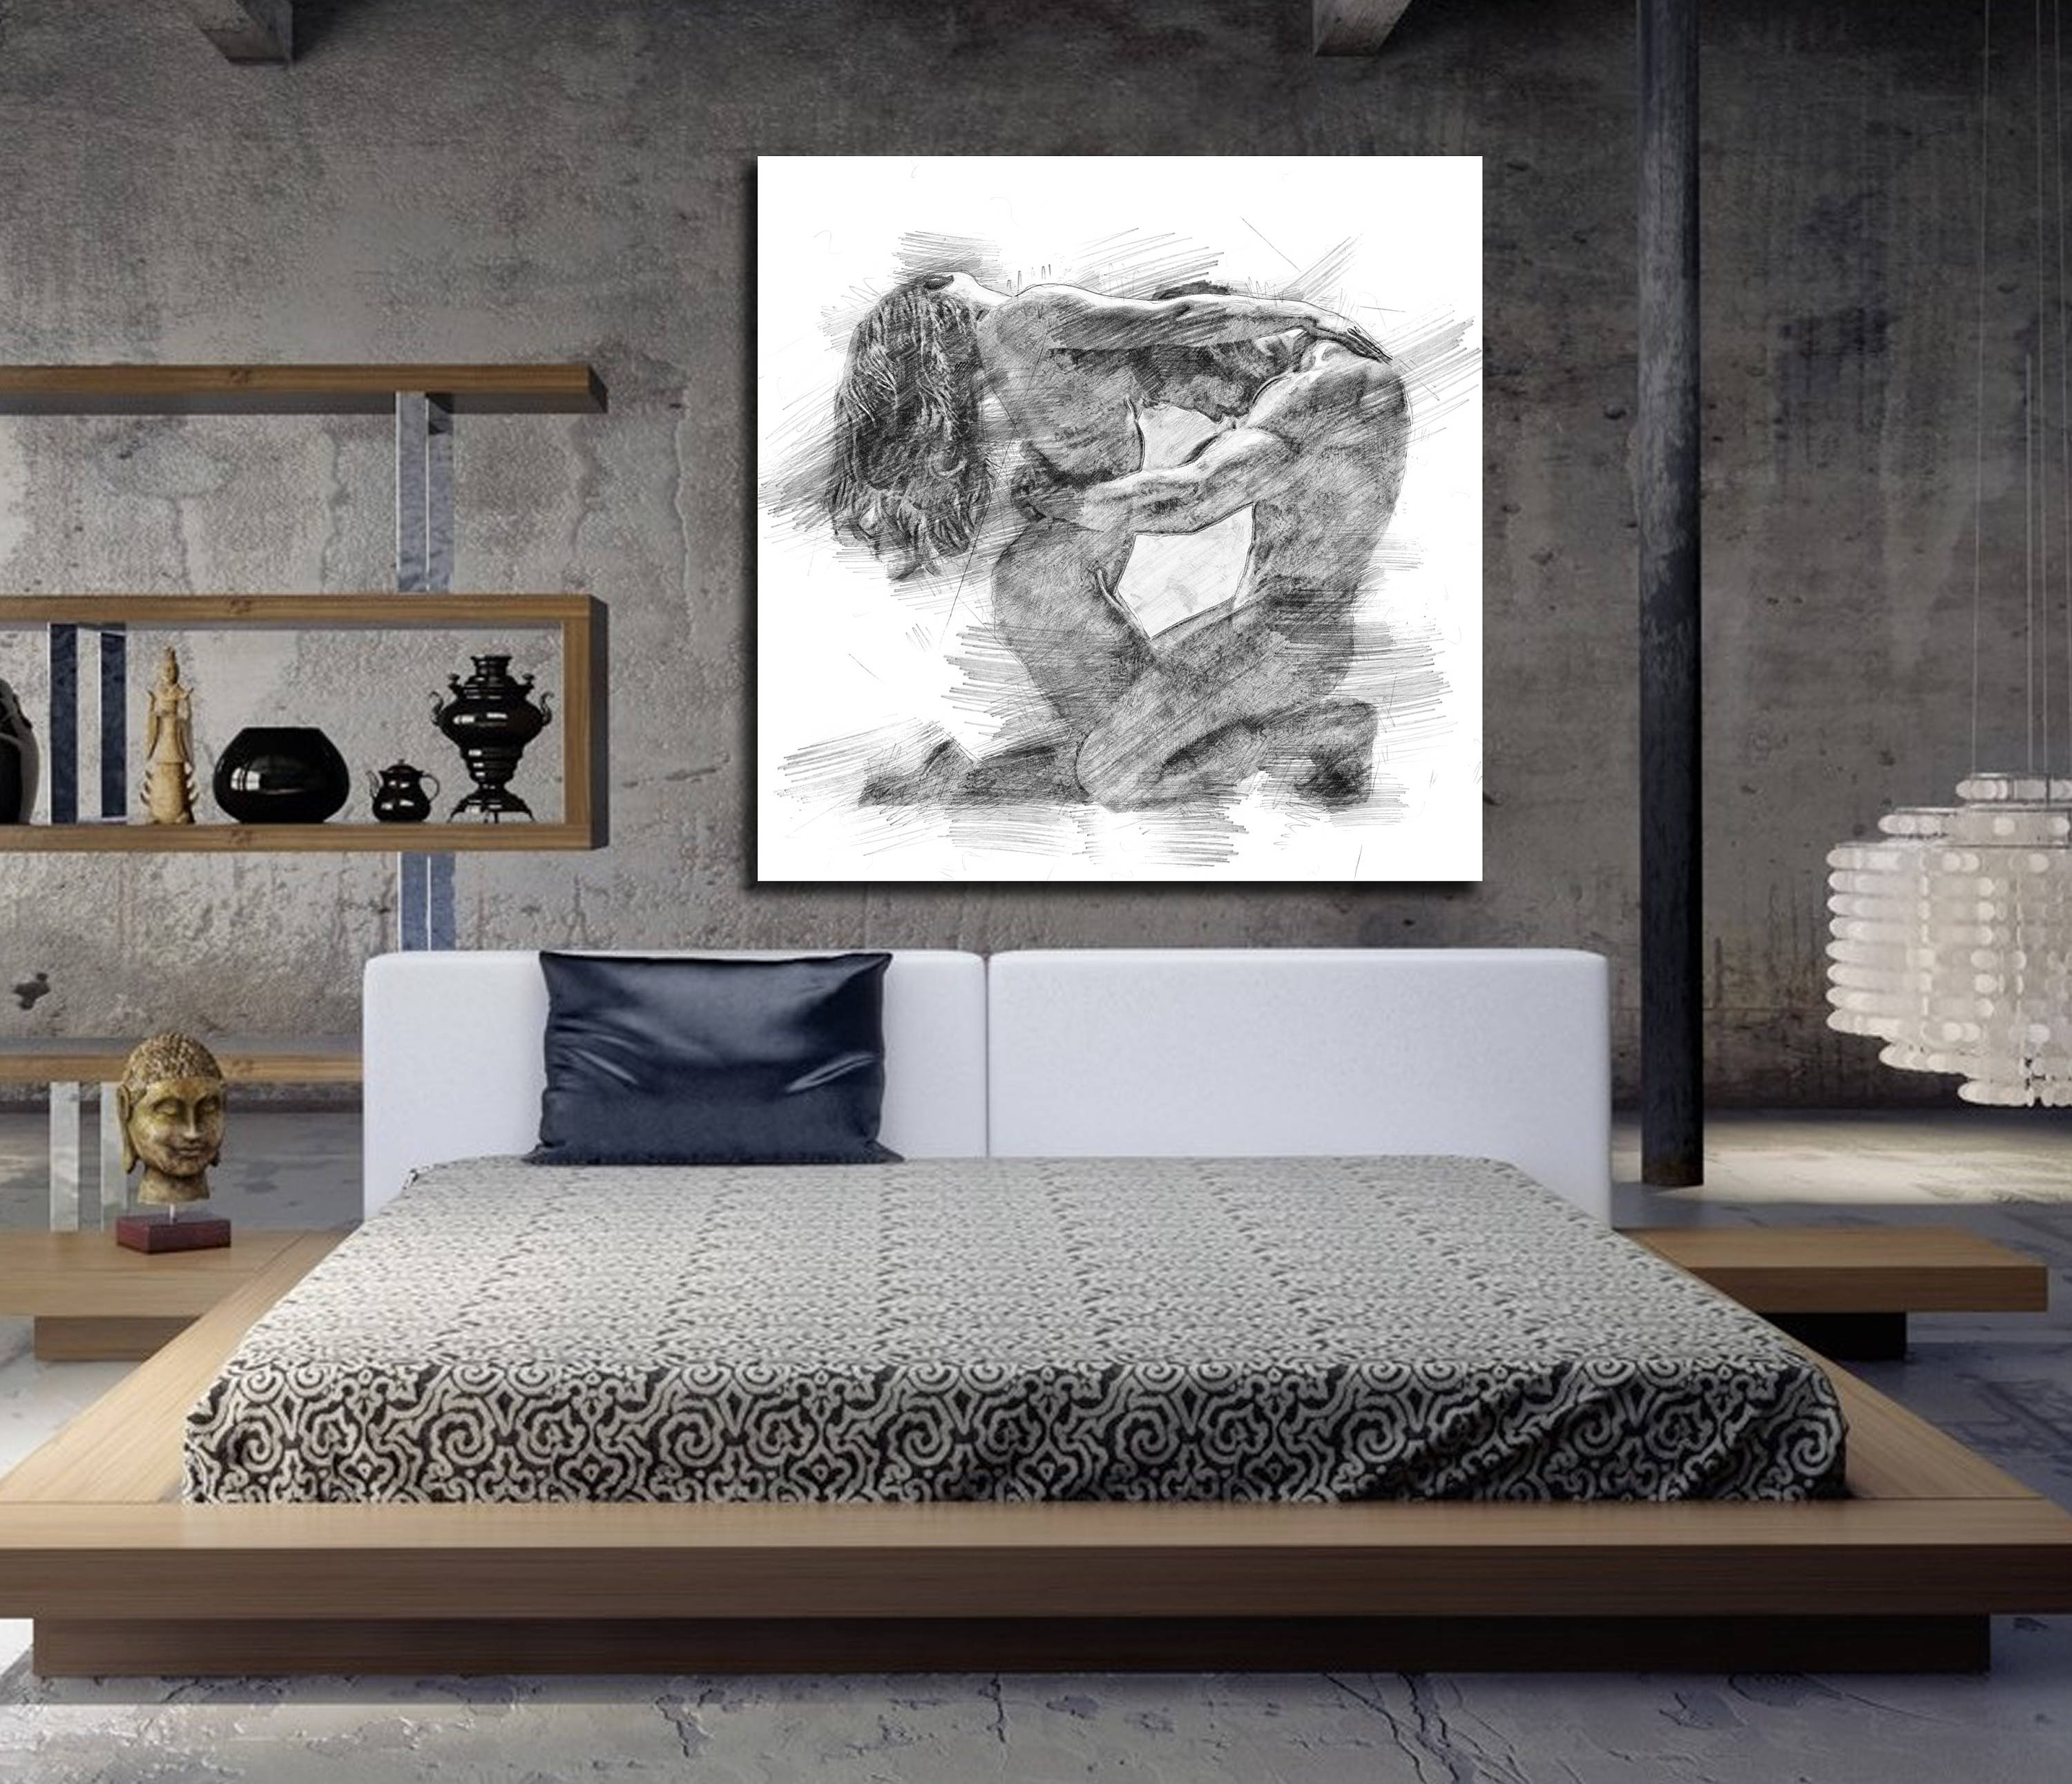 Canvas Art His & Hers Bedroom Wall Art, Abstract Art Print, Pencil Within Newest Masters Canvas Wall Art (View 5 of 15)